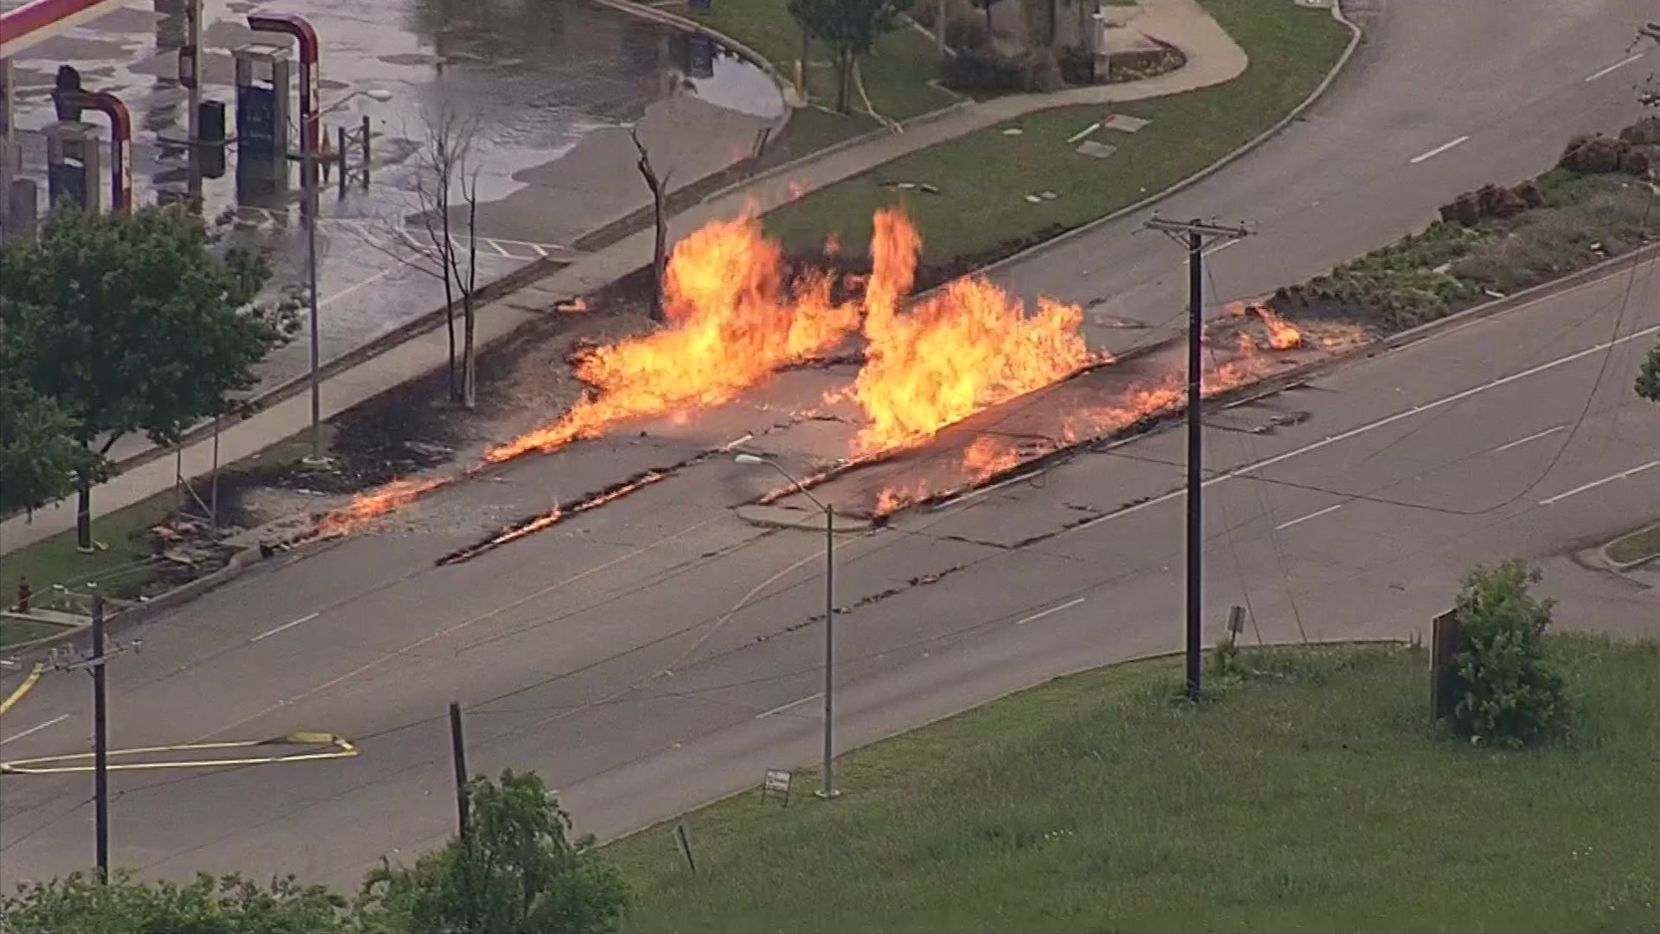 A aerial photo of a natural gas leak that led to a fire around Mayfield Road and Forum Drive in Grand Prairie on Saturday, April 18, 2020, captured by KXAS-TV (NBC5).